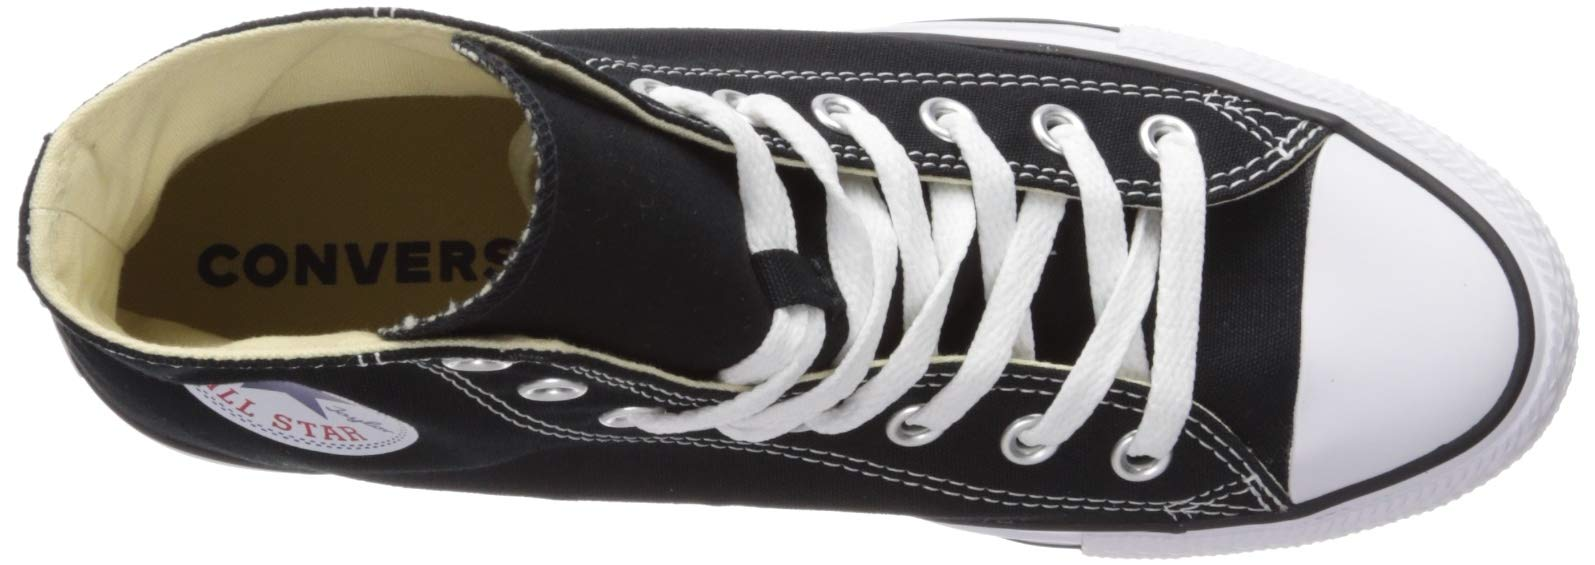 Chuck Taylor All Star Canvas High Top, Black, 4 M US by Converse (Image #13)